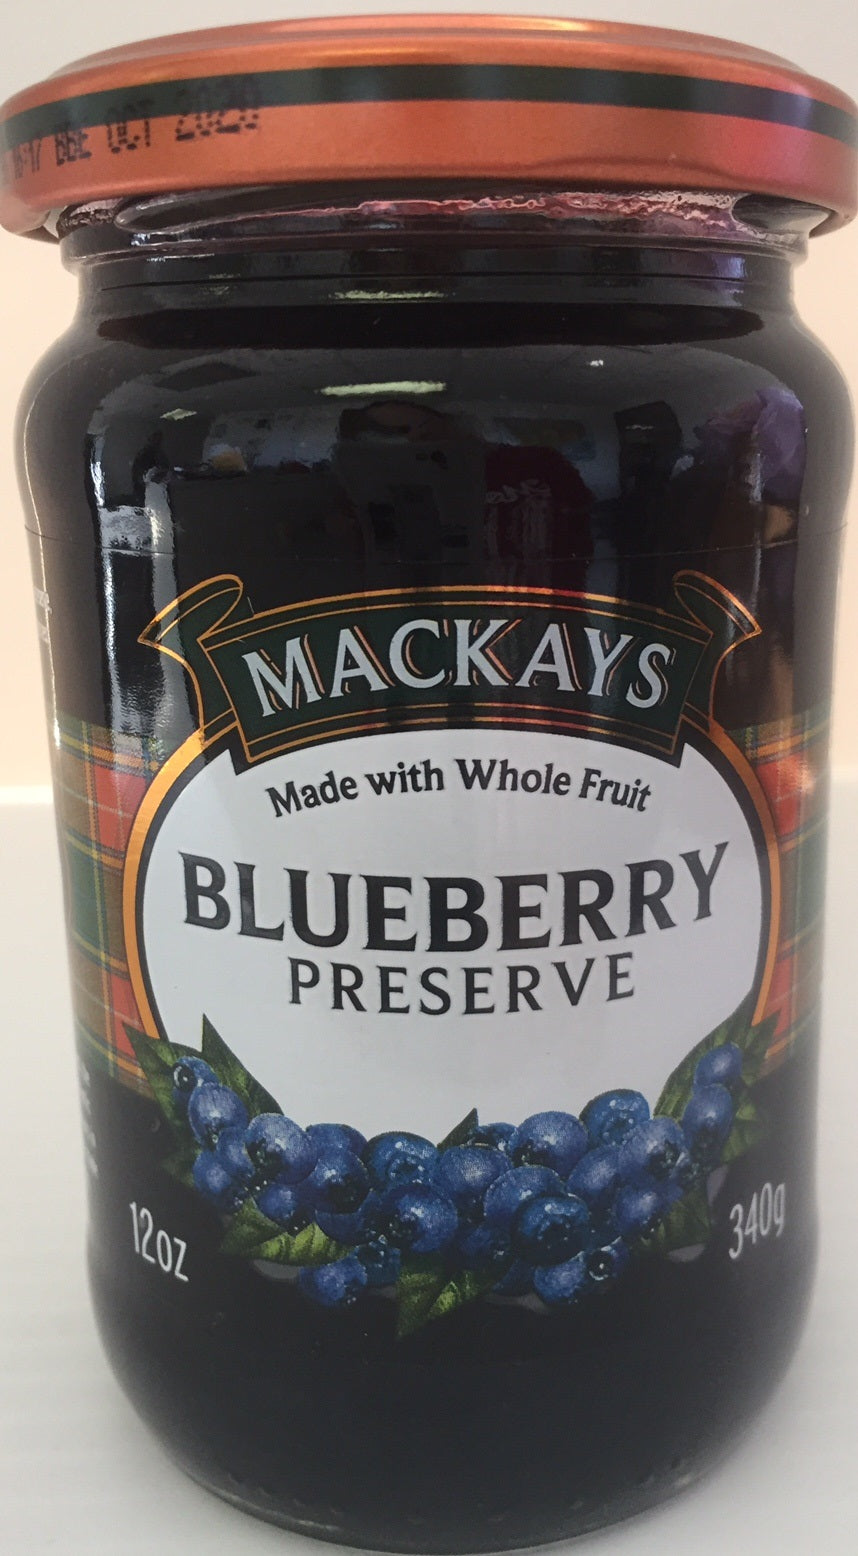 Mackays Blueberry Preserve 12oz